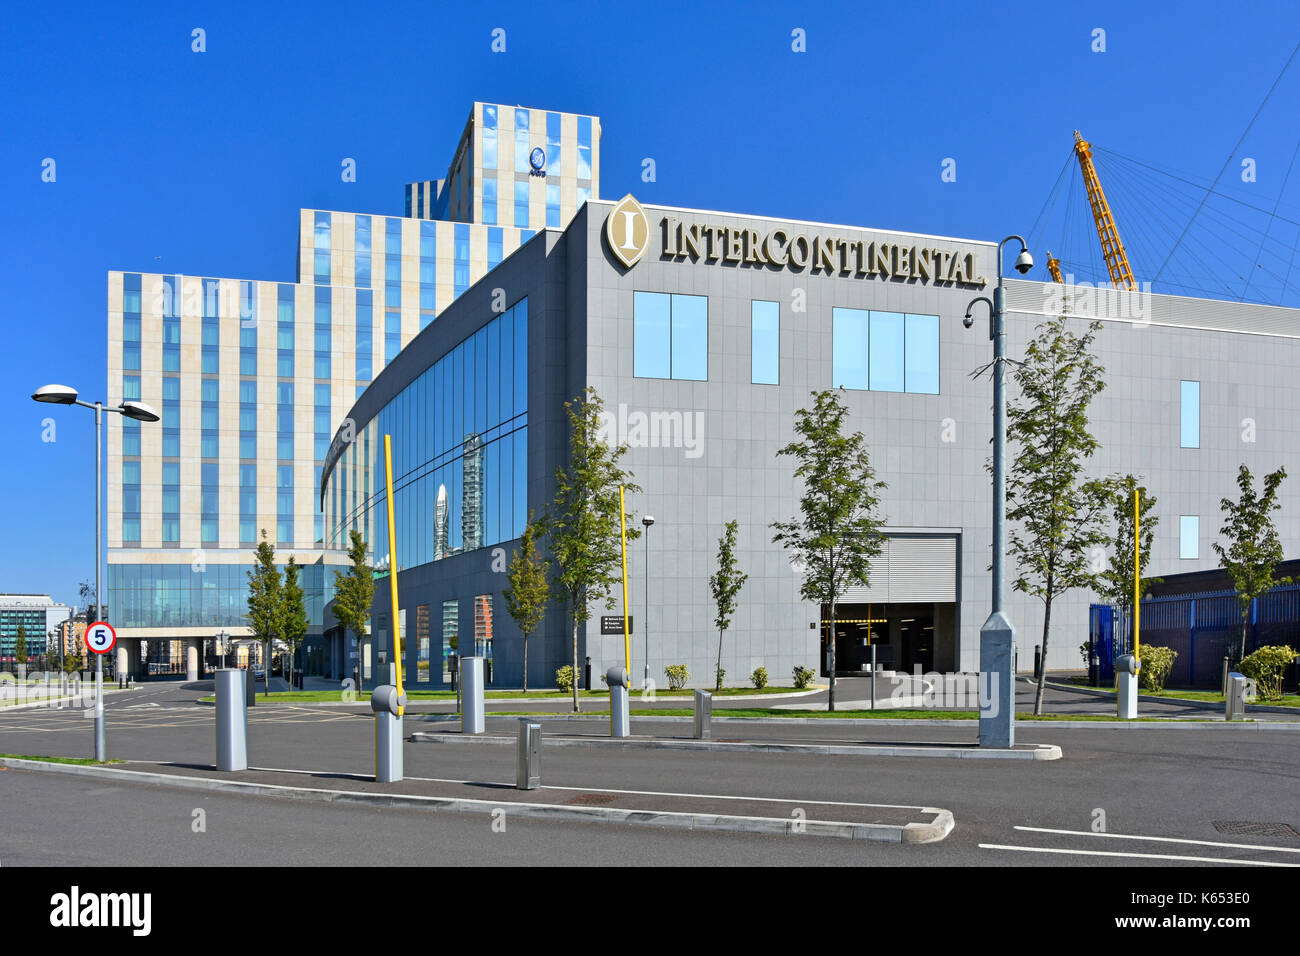 Intercontinental Hotels Group purpose built O2 hotel between River Thames & millenium dome O2 entertainment complex on Greenwich Peninsula England UK - Stock Image